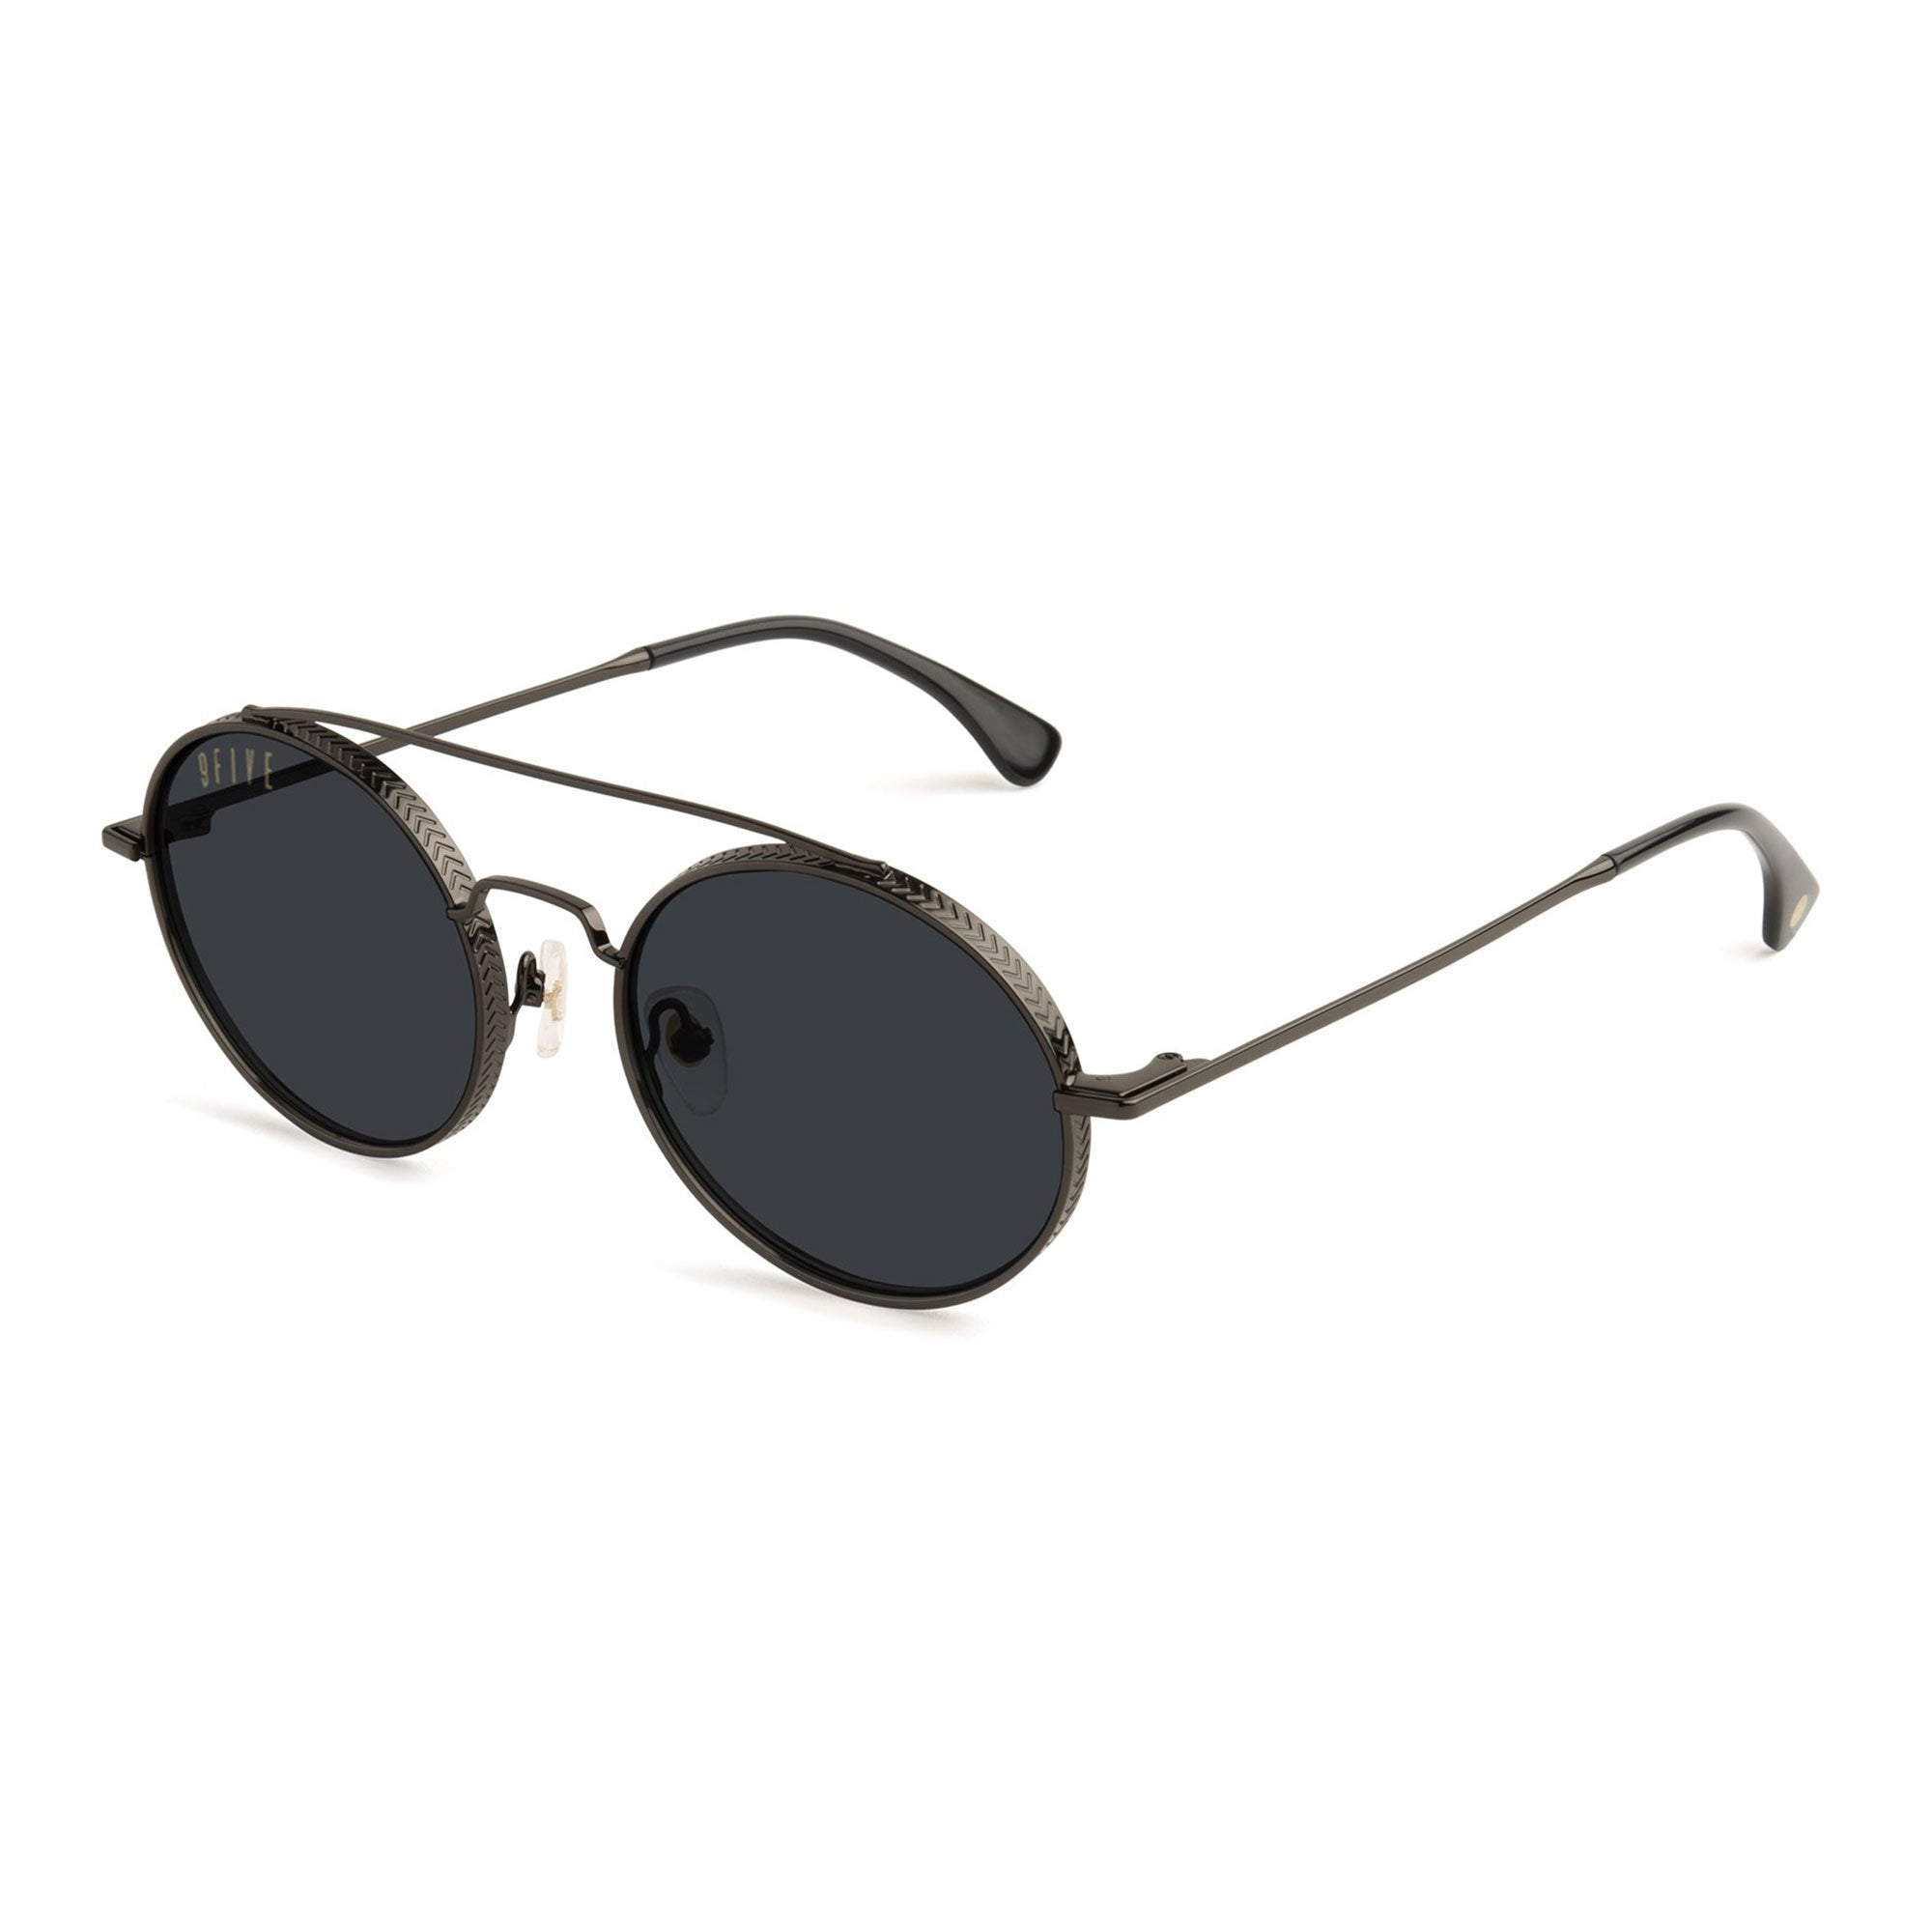 9 Five 50 50 Sunglasses Product Photo #2